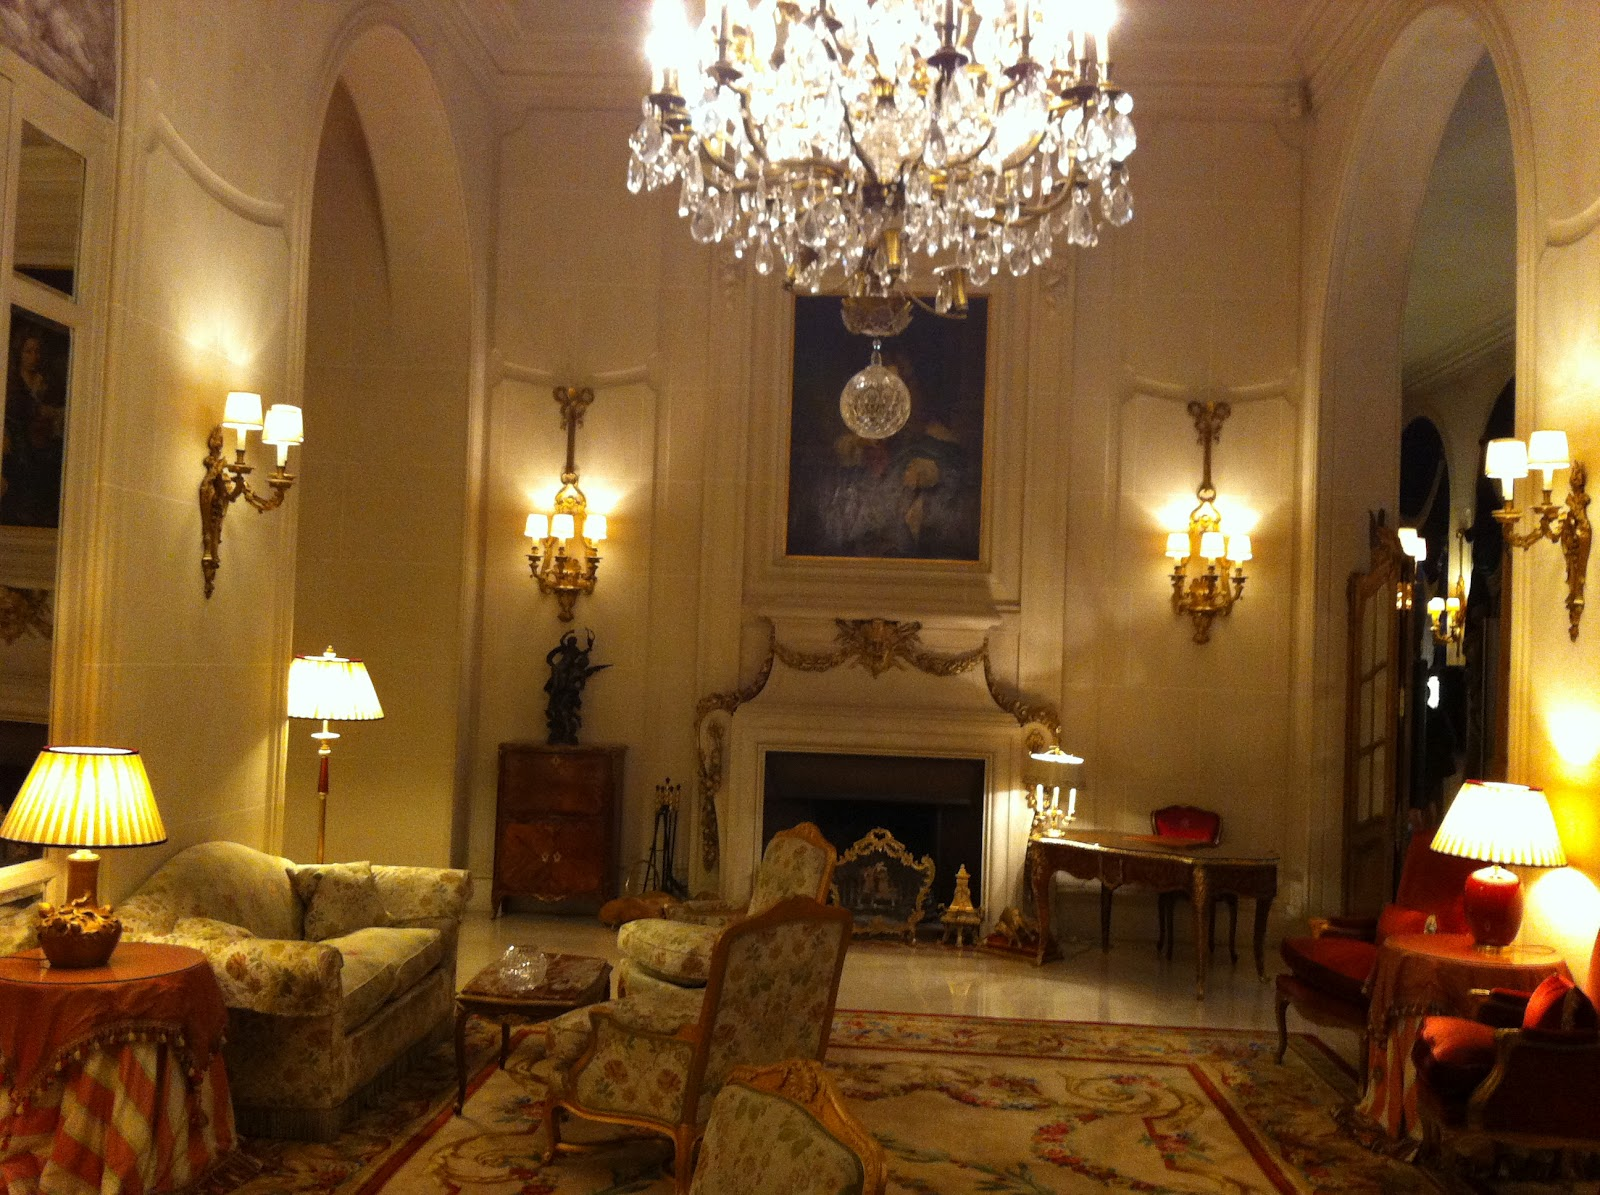 The French do chandeliers like no other (Ritz Carlton.)